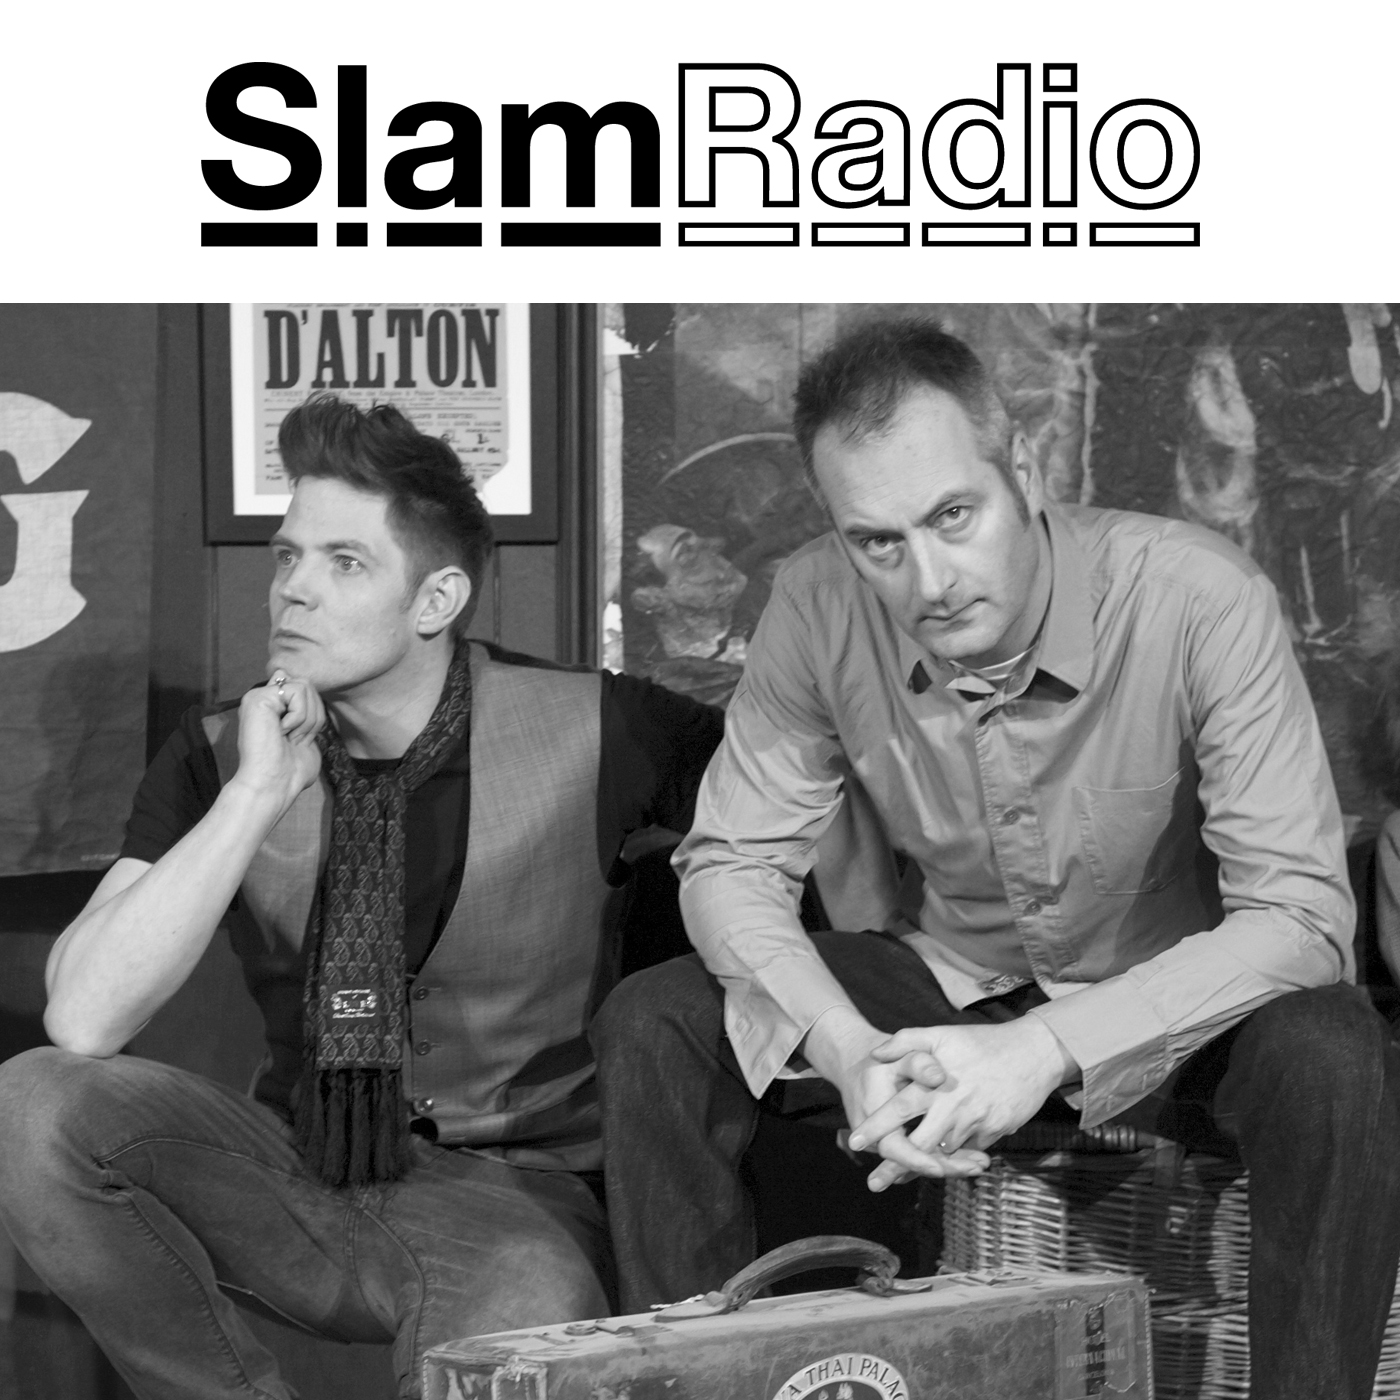 Delta Podcasts - Slam Radio by Soma Records (10.11.2017)